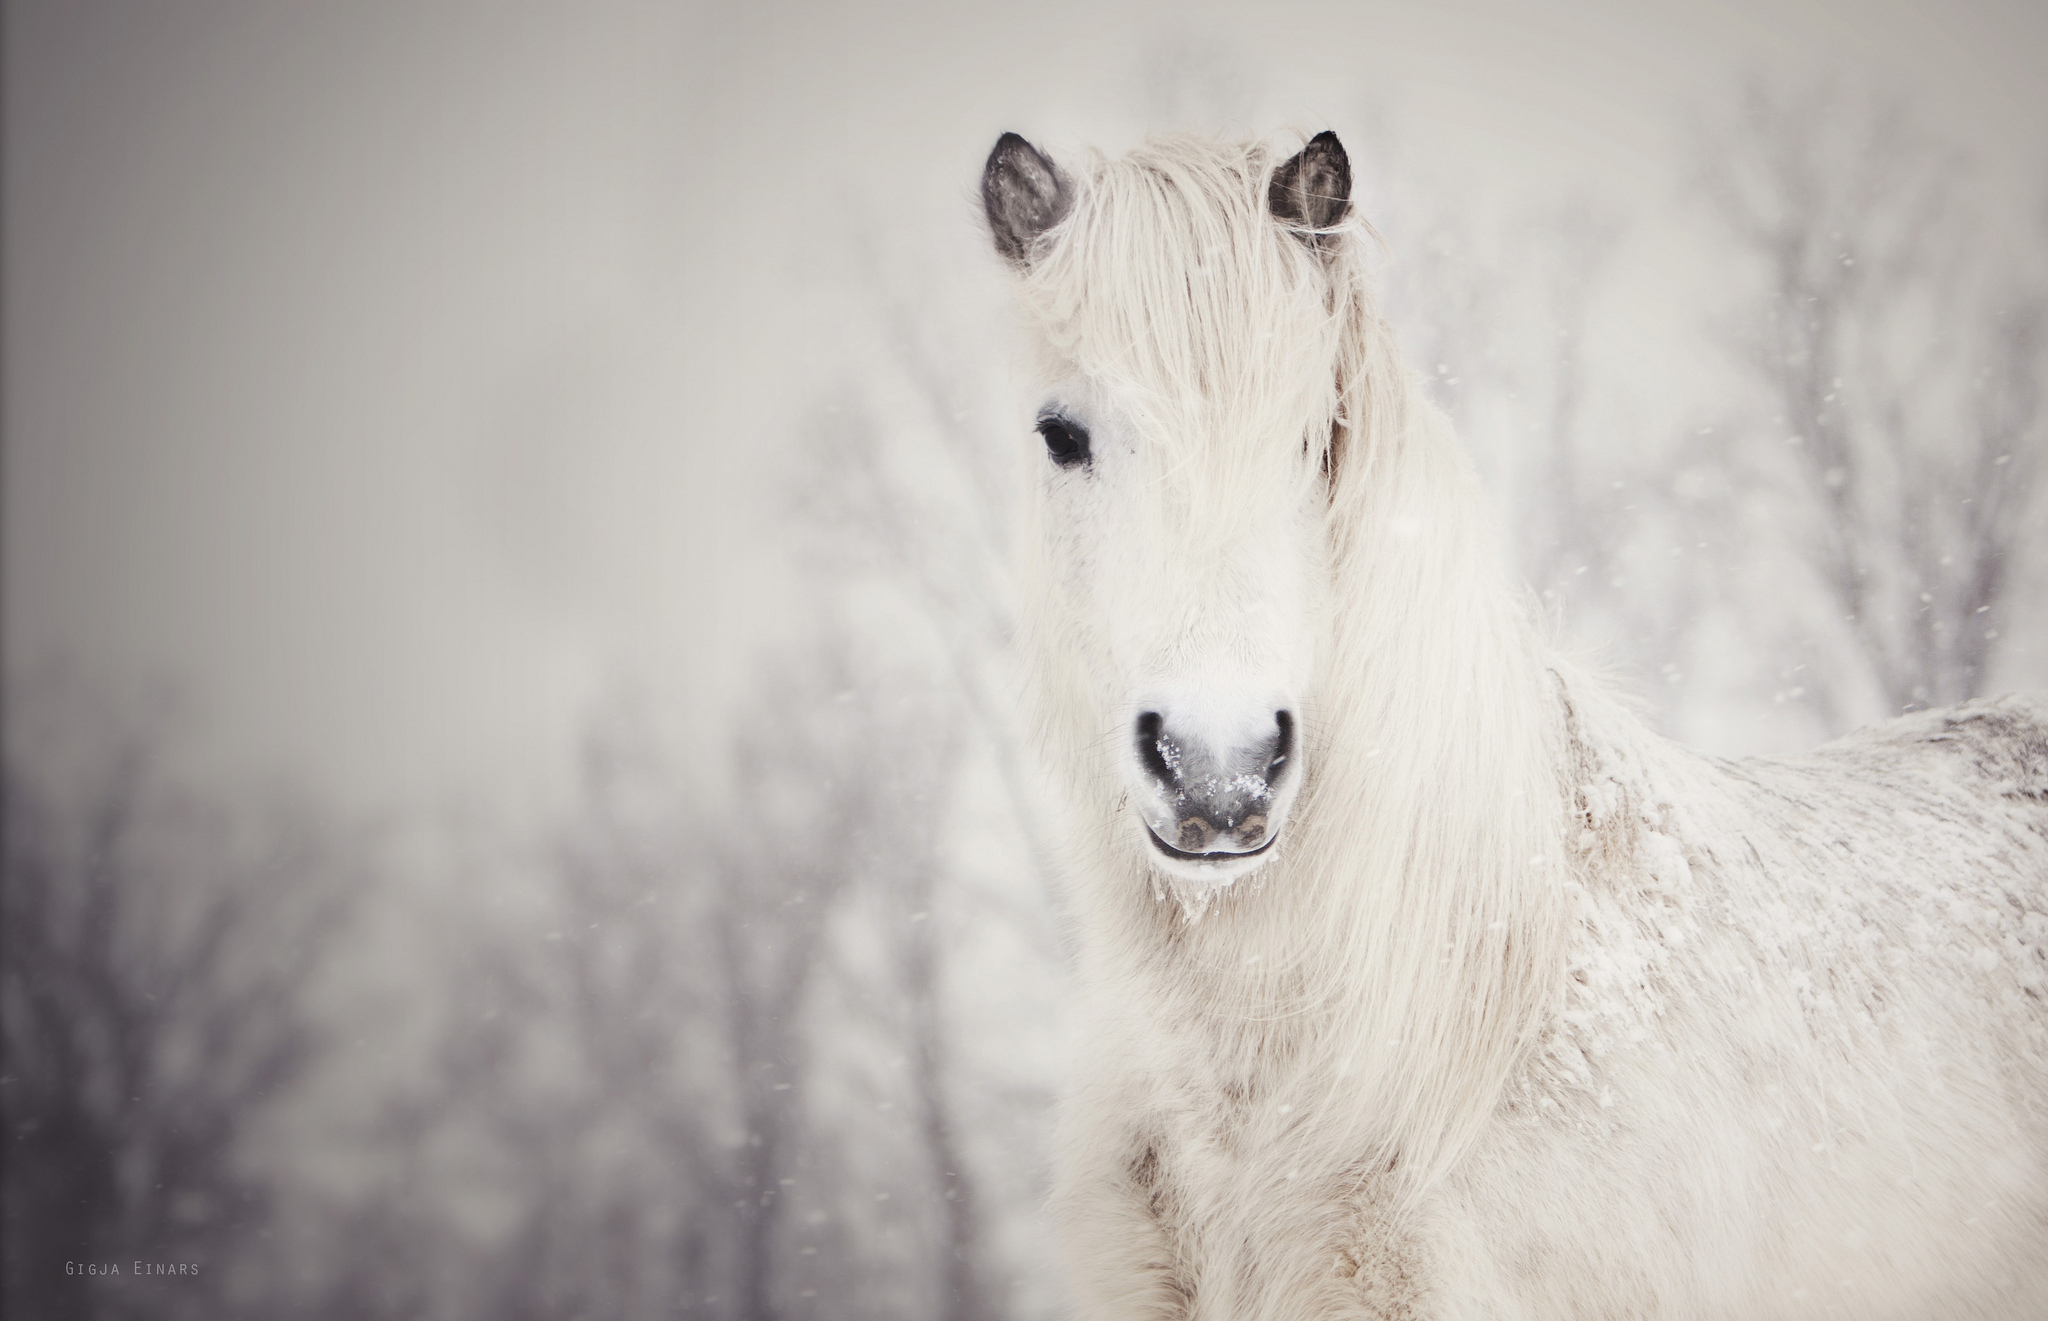 Wallpaper snowy white horse snow wallpapers animals   download 2048x1321